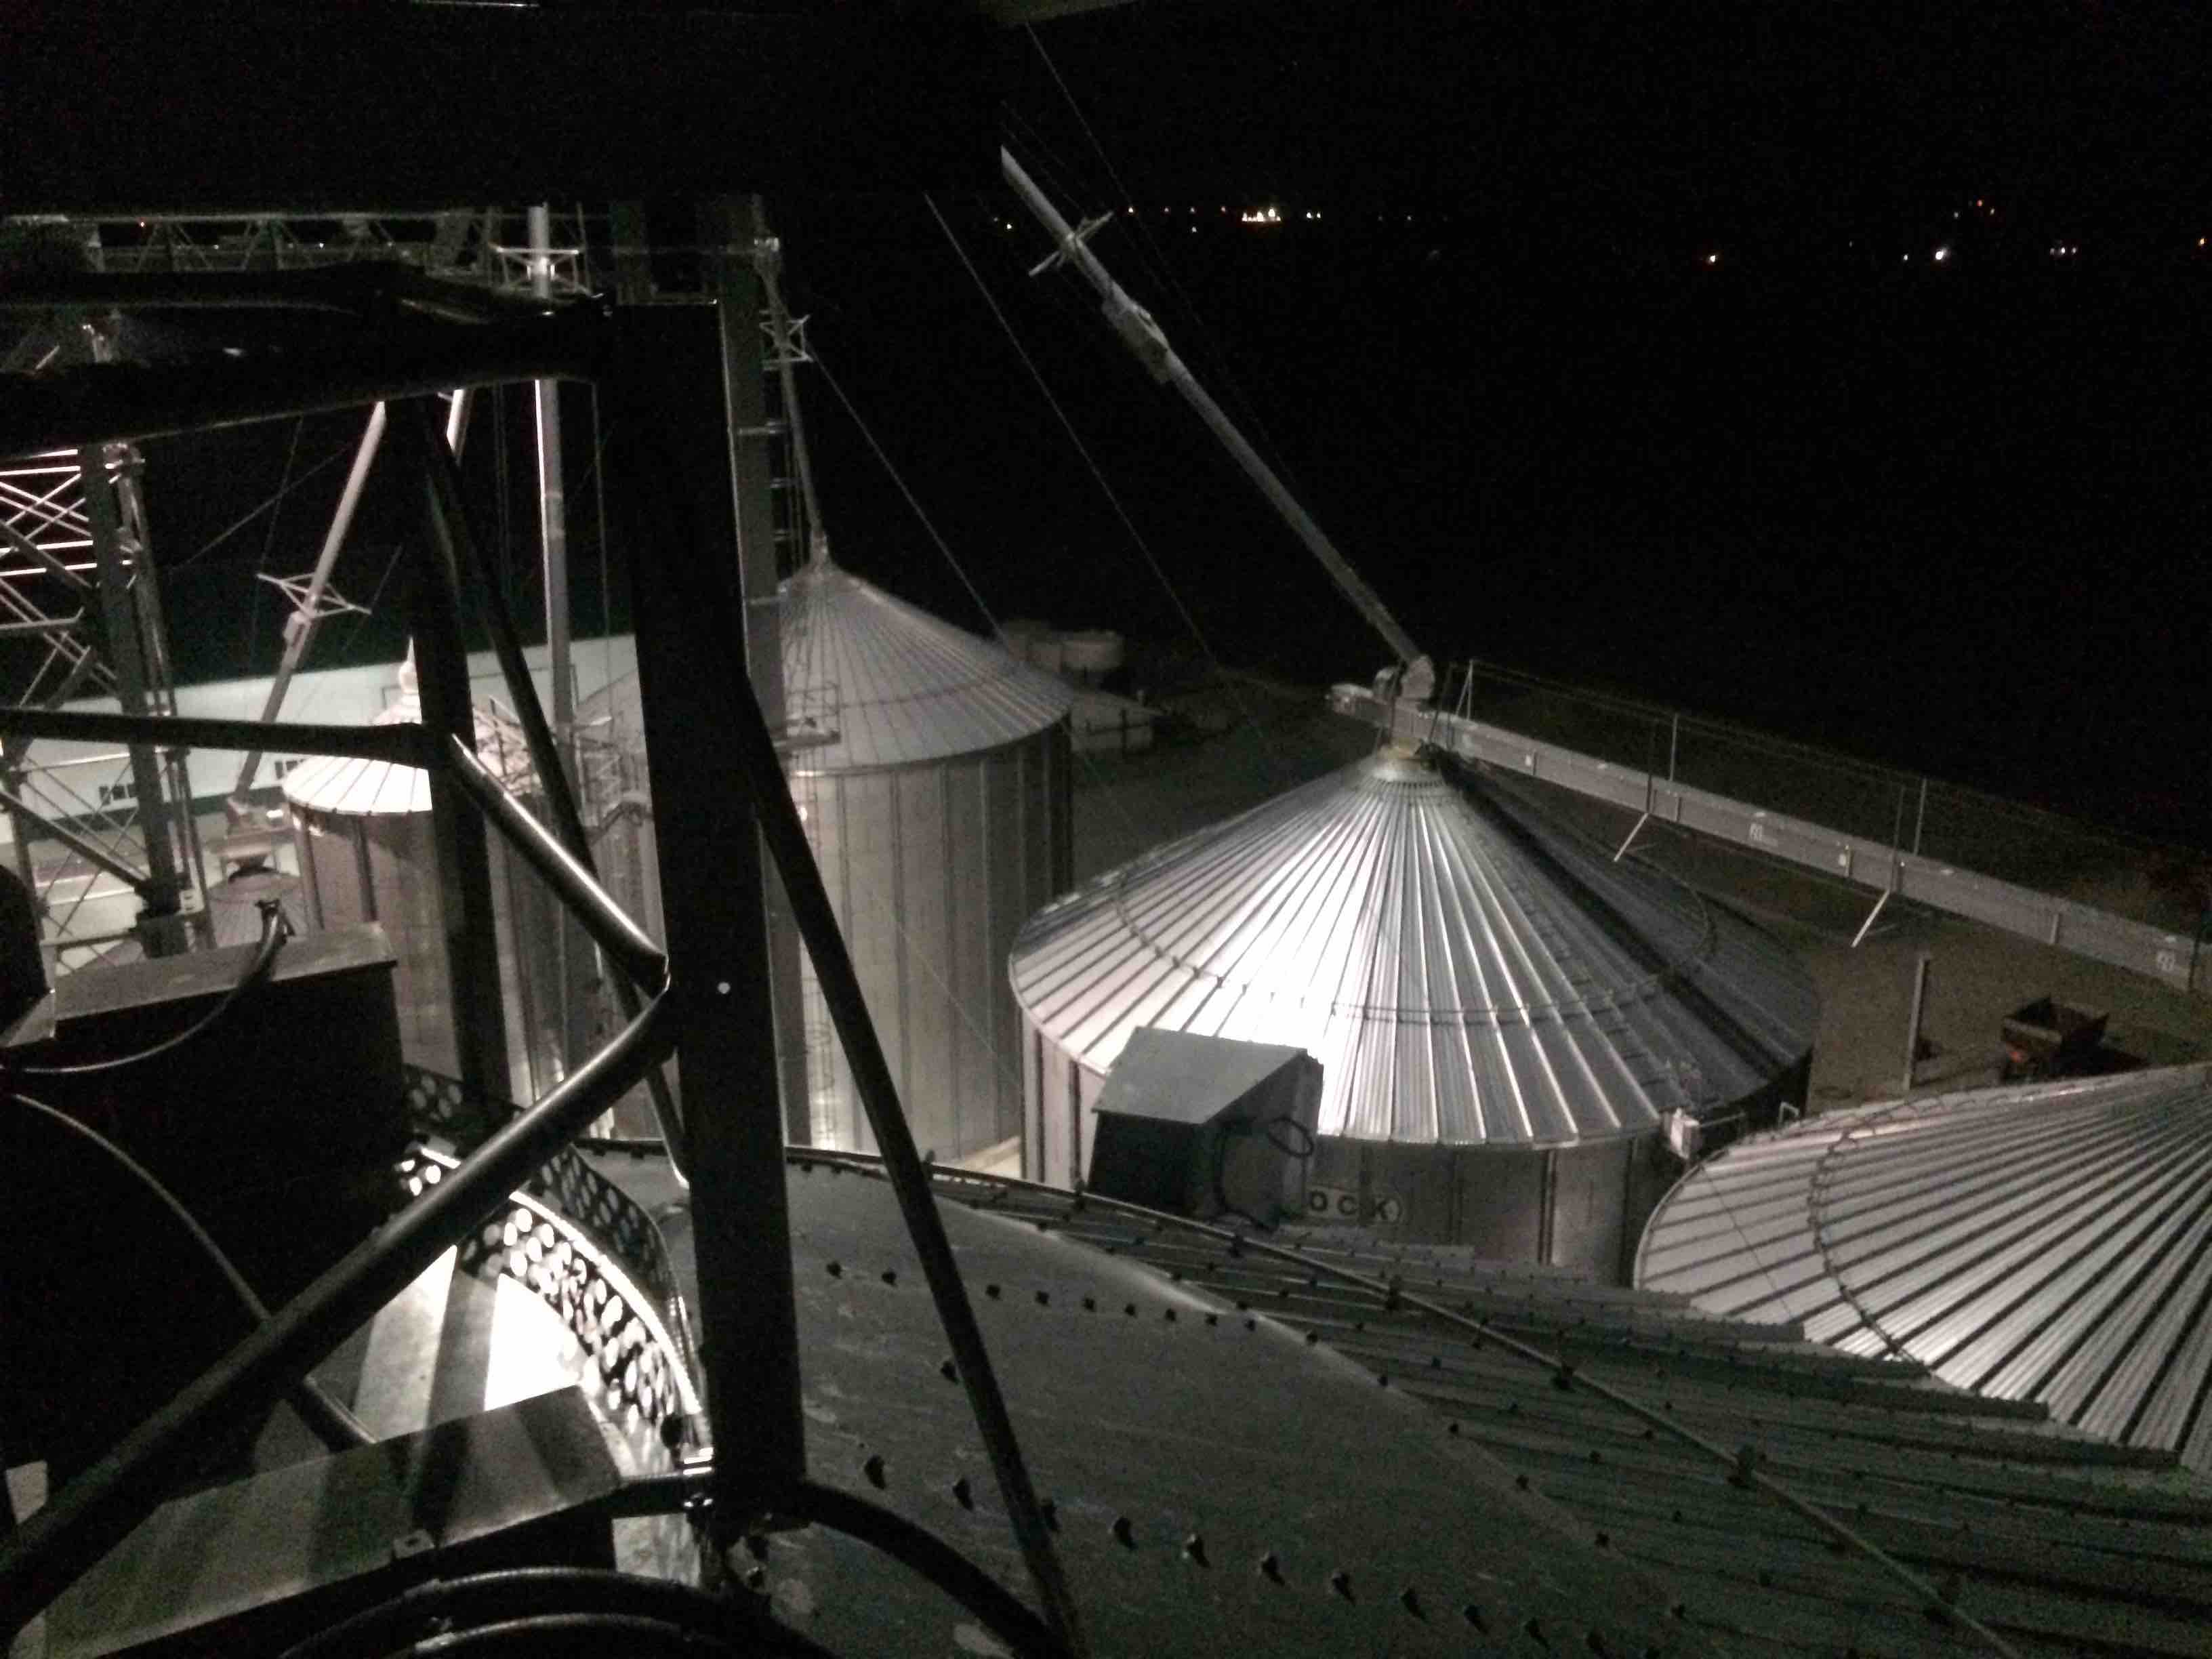 Lighting Solutions for Grain Bins